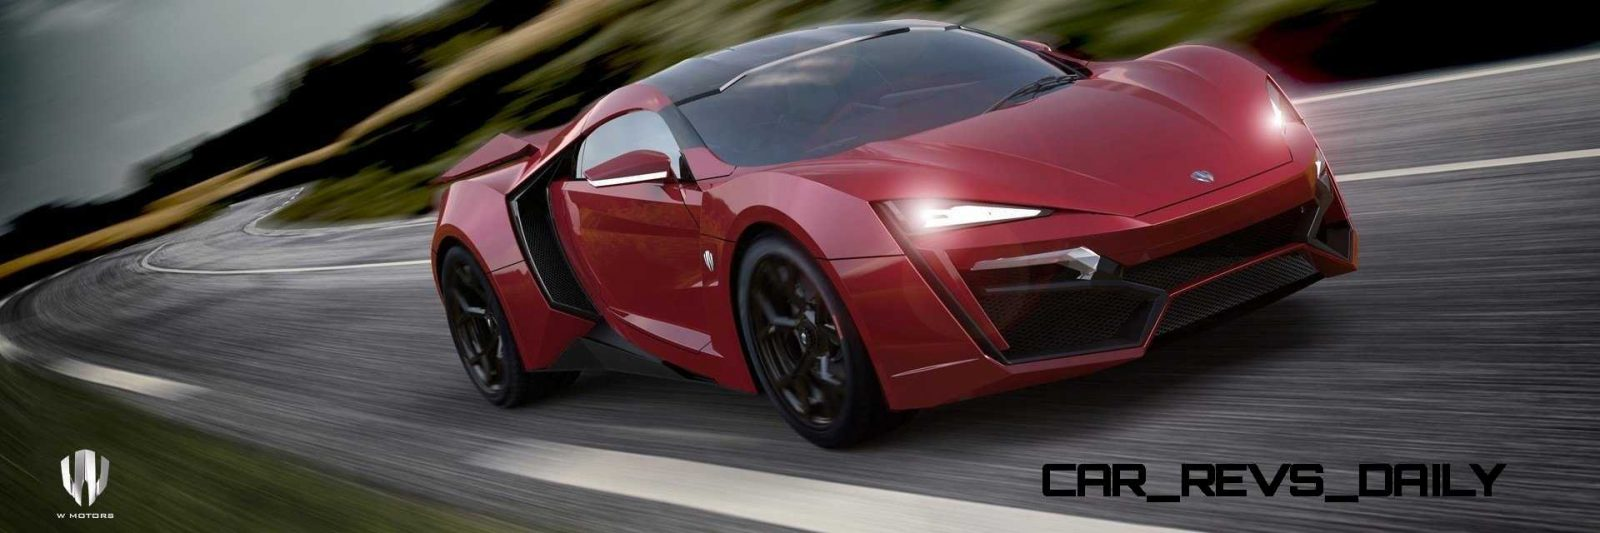 w motors lykan hypersport coloring pages - photo #37